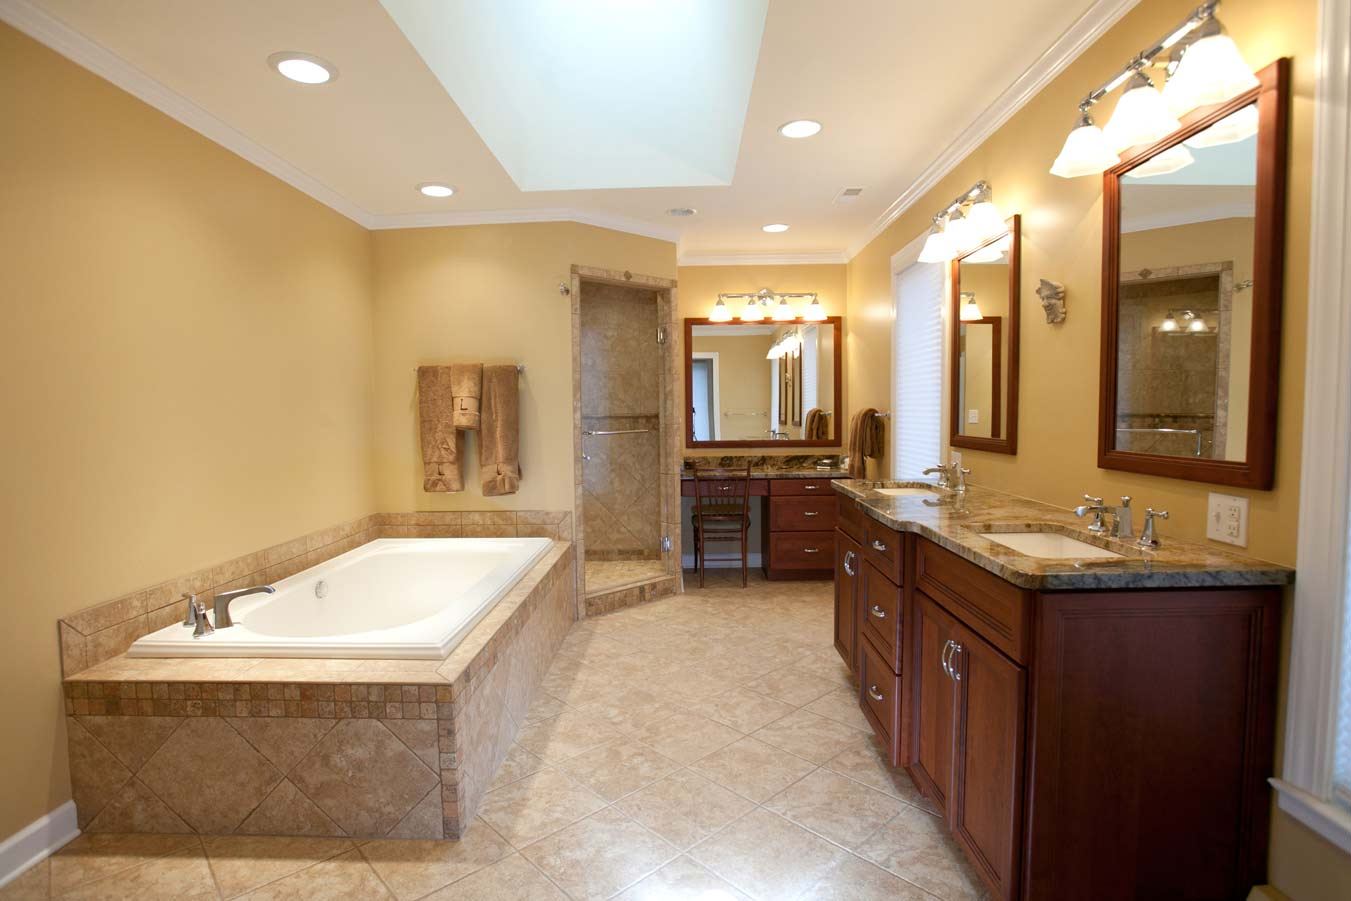 25 best bathroom remodeling ideas and inspiration On bathroom remodel inspiration